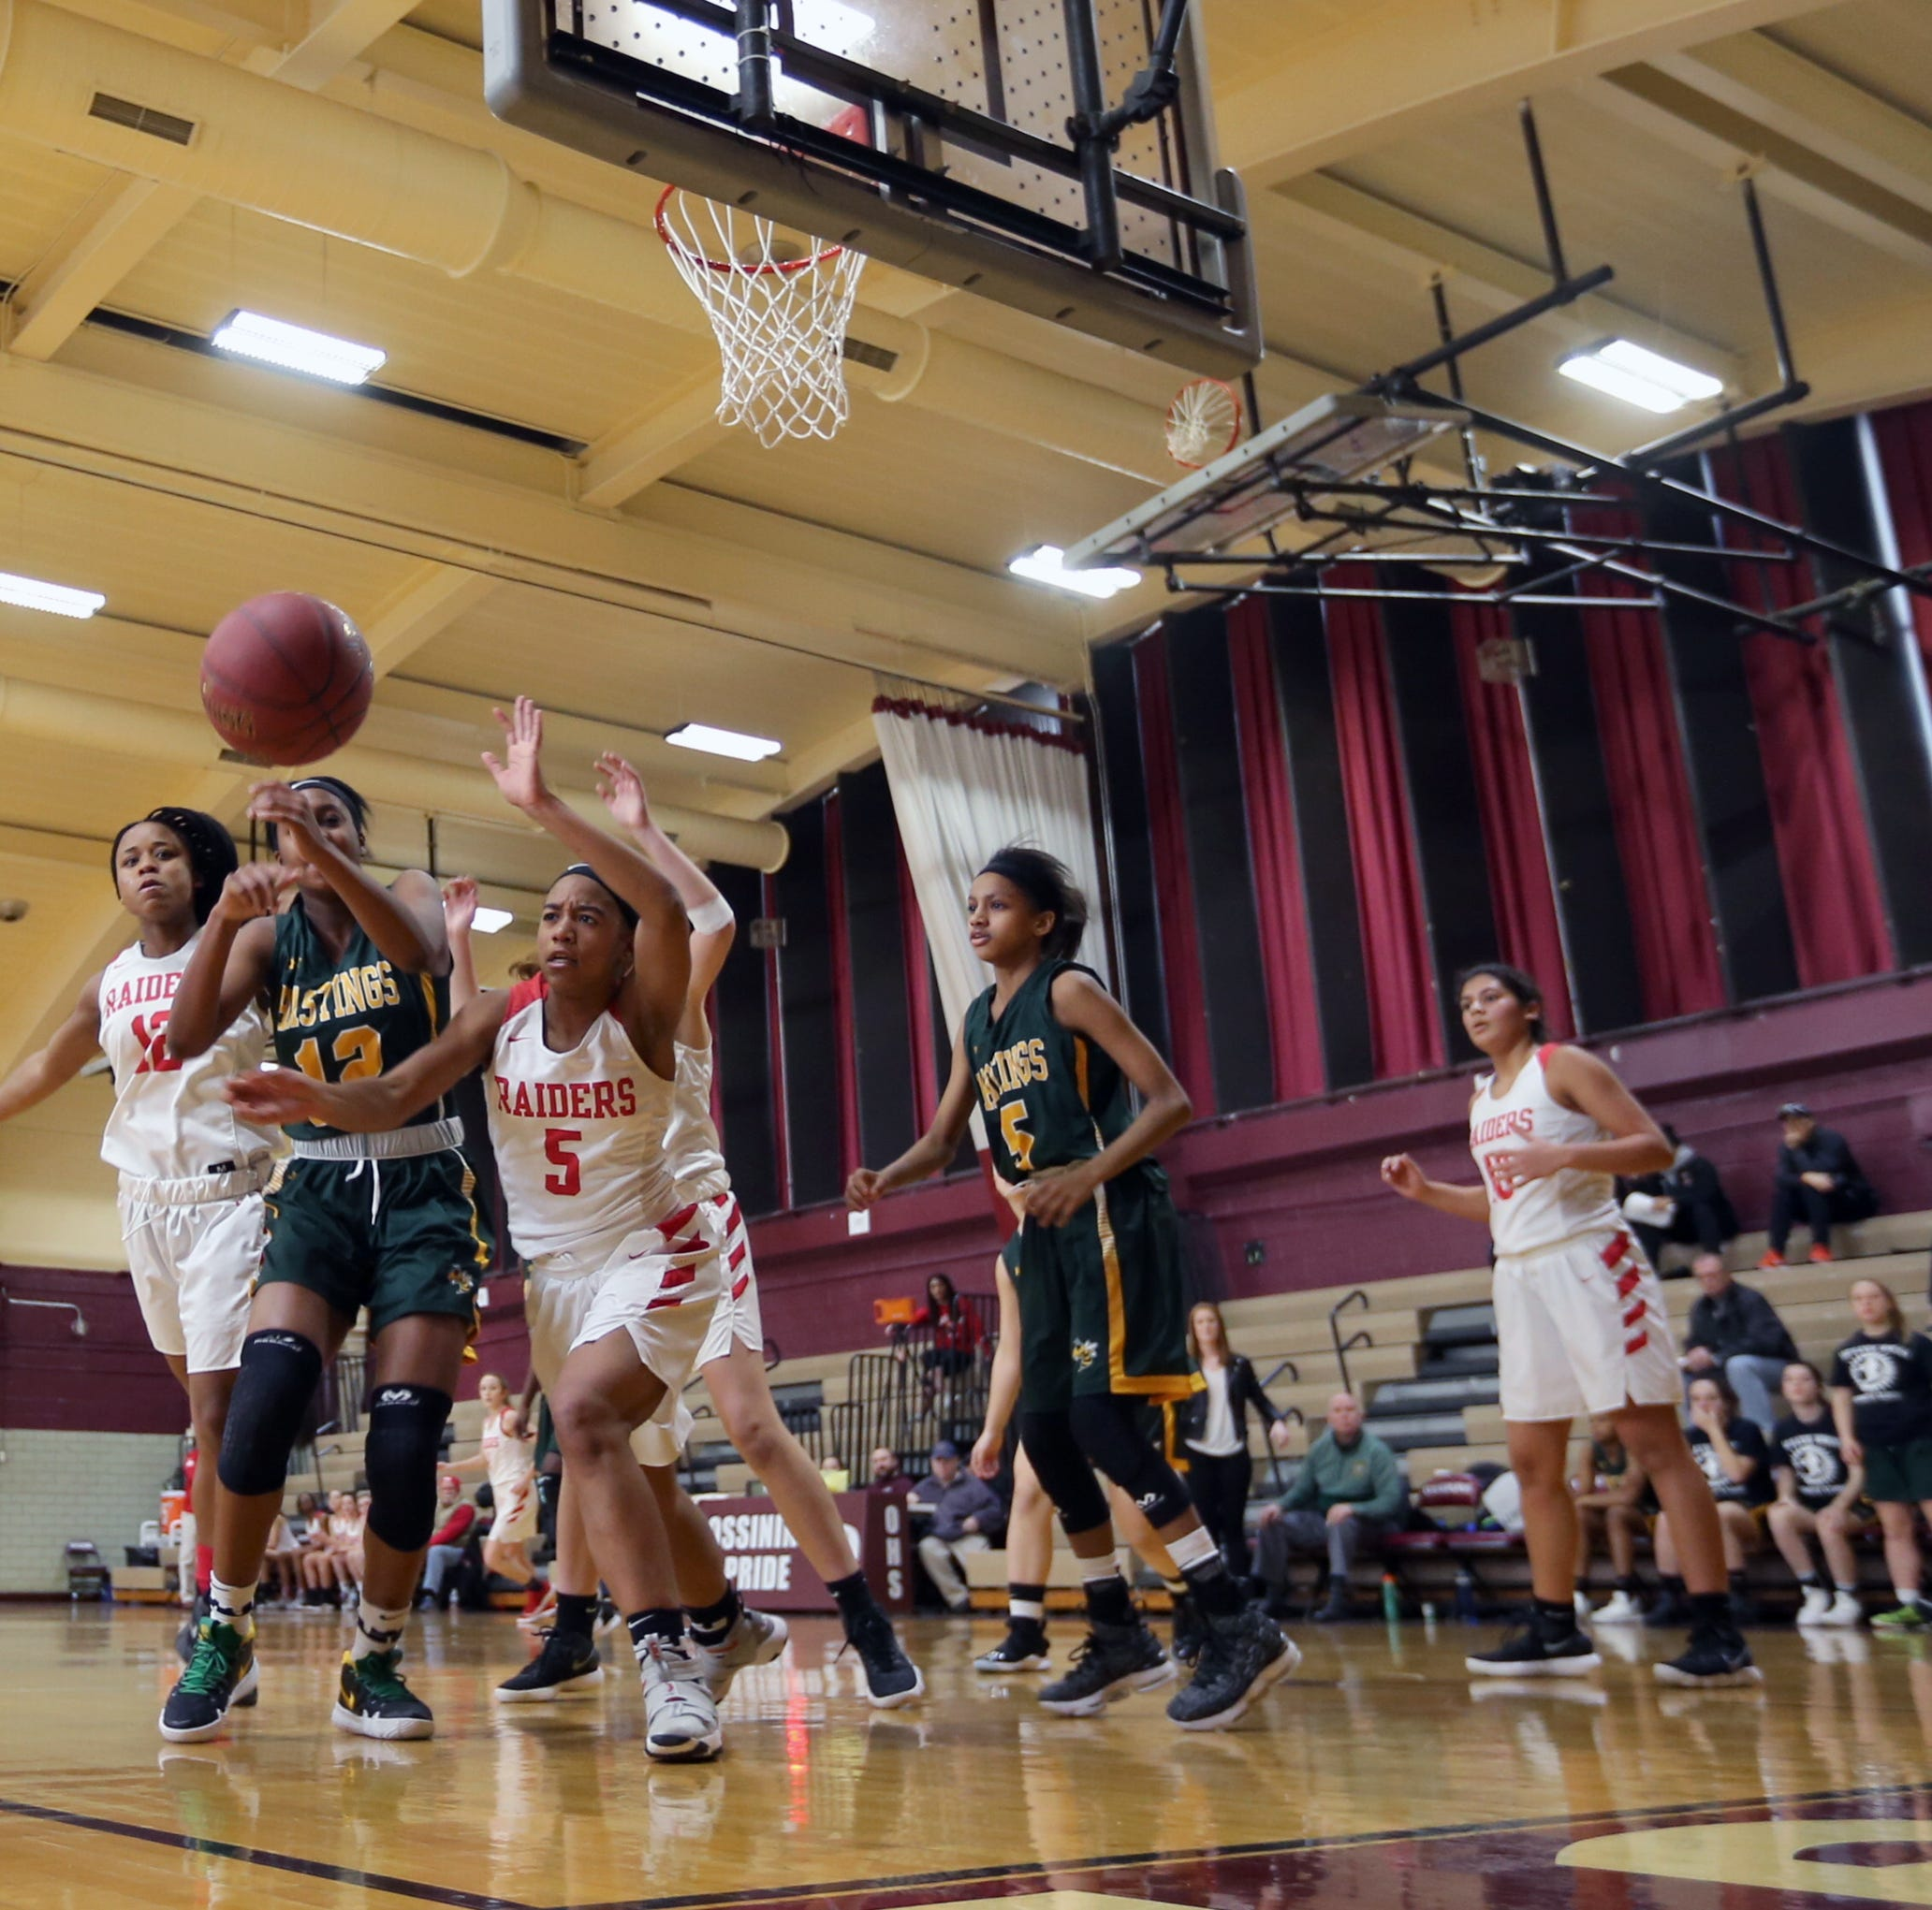 Girls basketball: Everything you need to know about the Section 1 tournament